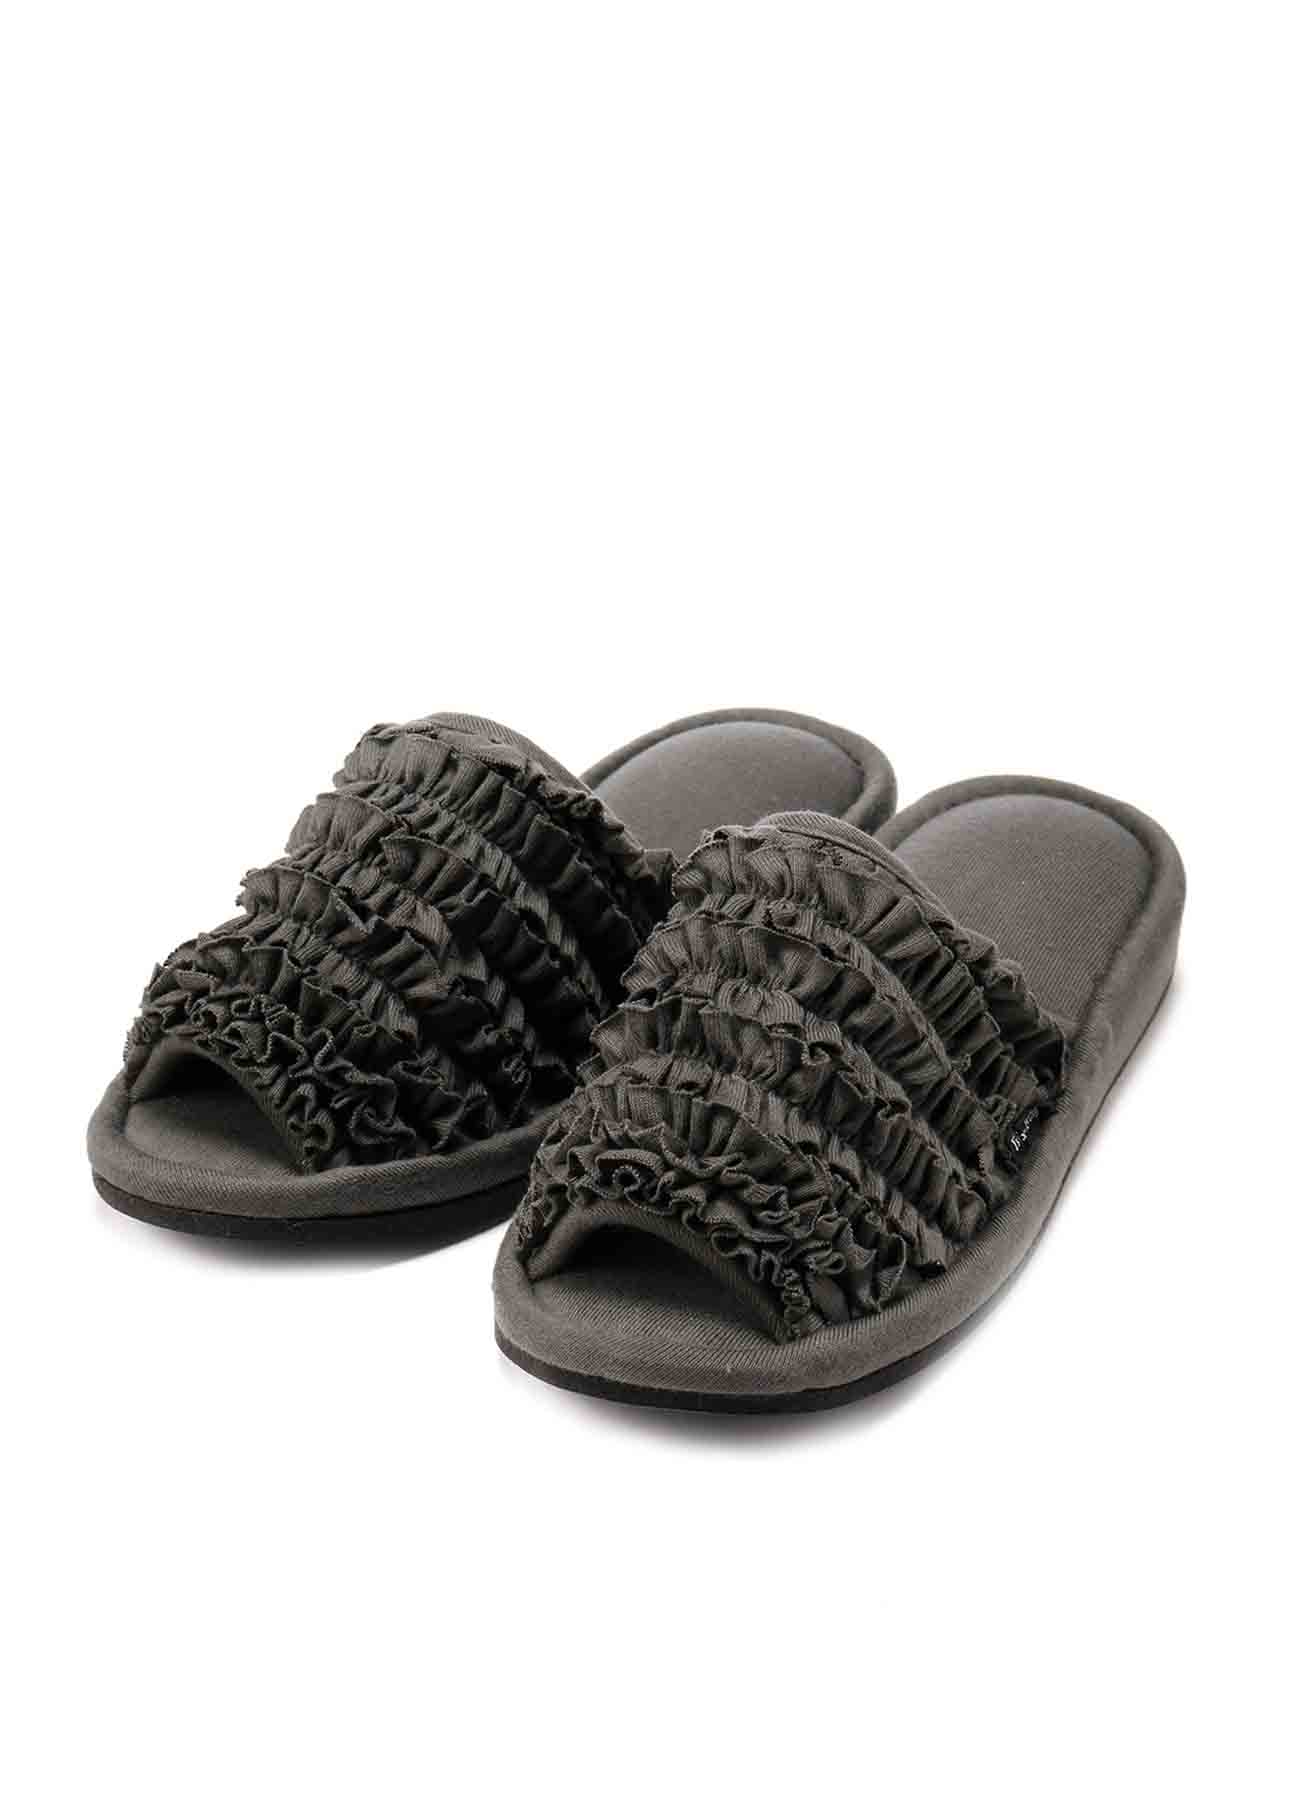 COTTON JERSEY SLIPPERS